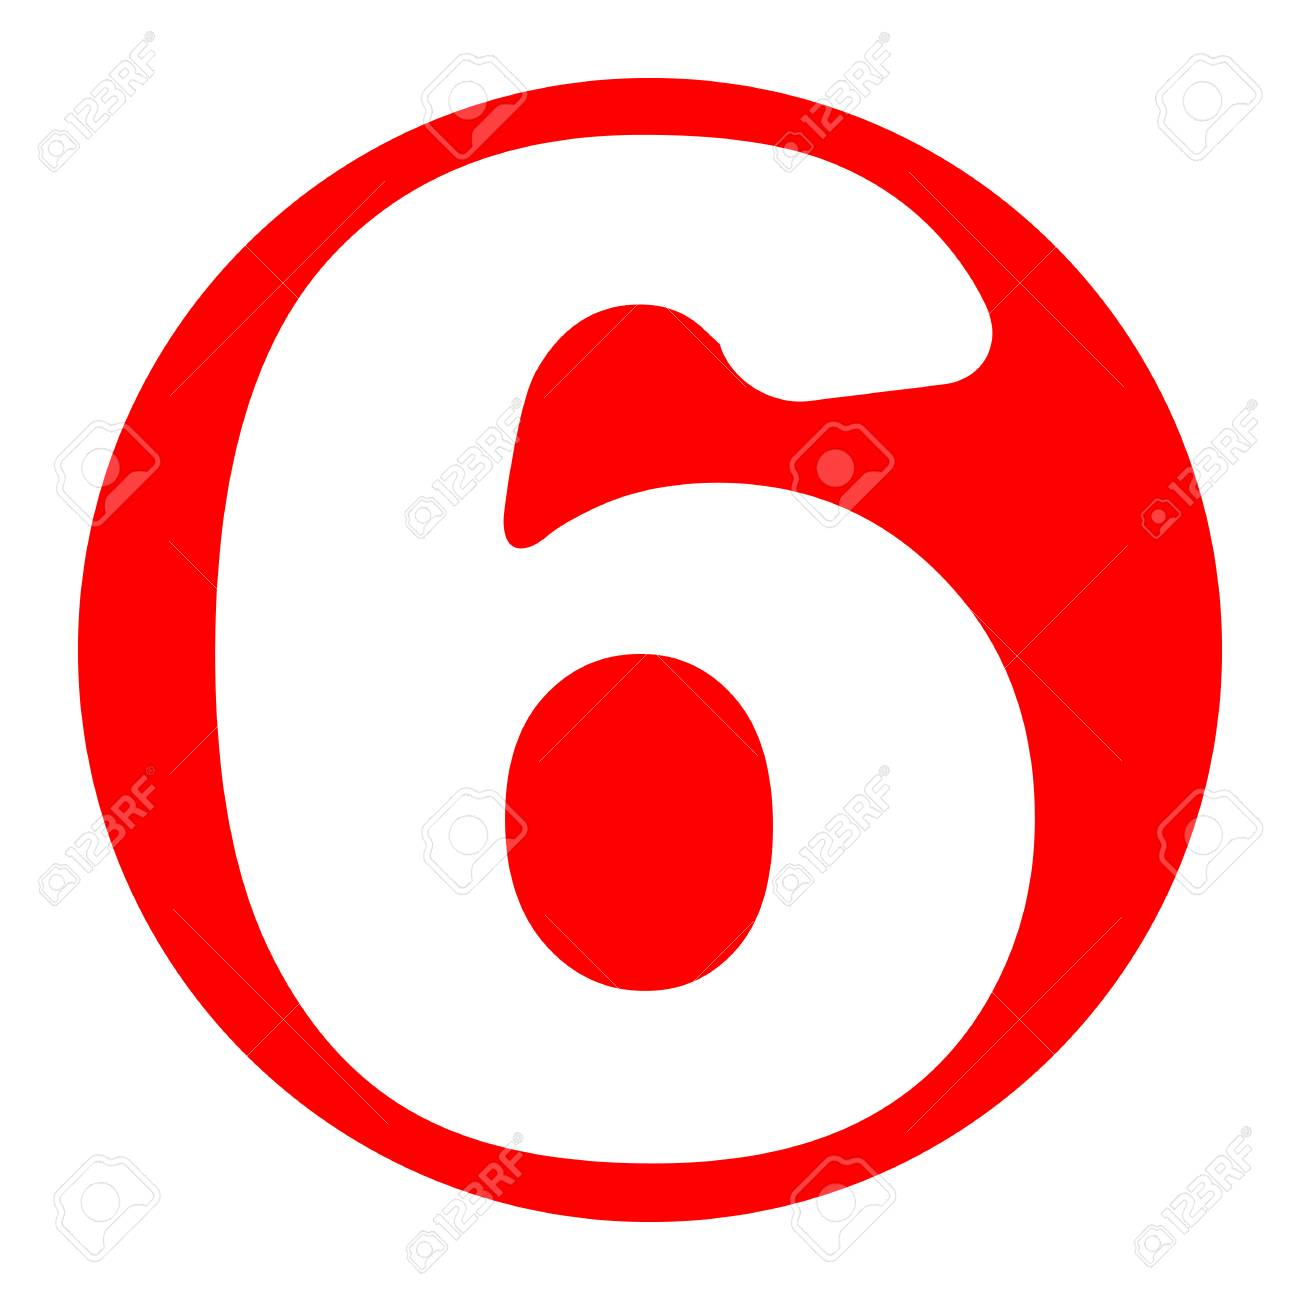 number 6 sign design template element vector white icon in rh 123rf com red circle with line clipart red circle with line clipart